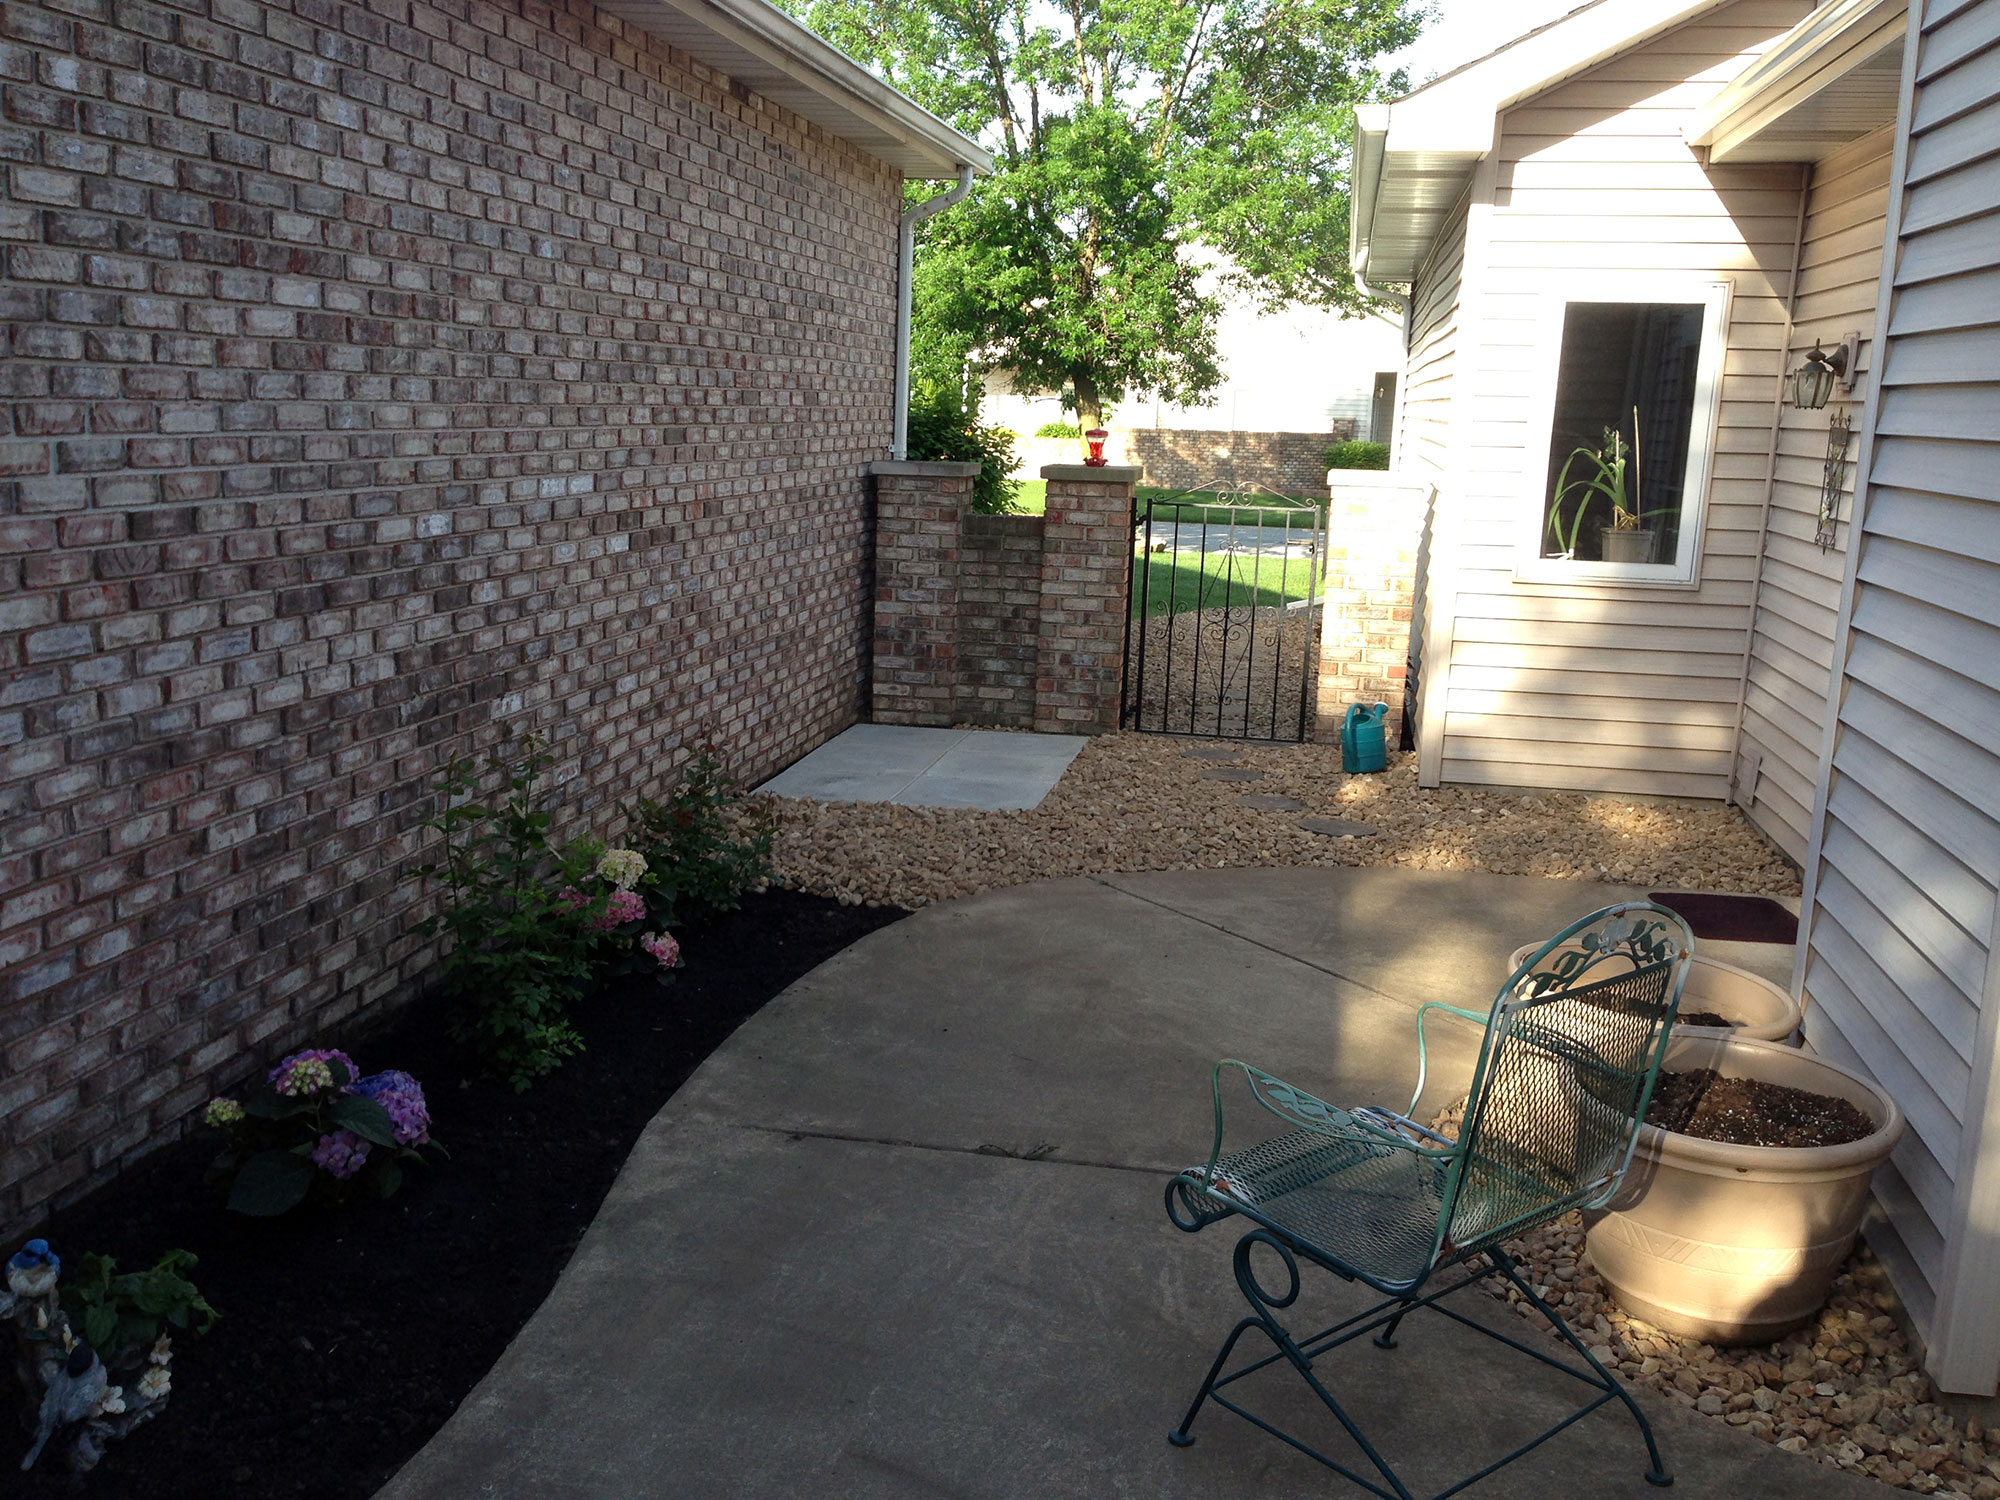 Northwest indiana landscaping and lawn care for Courtyard landscape oostburg wi